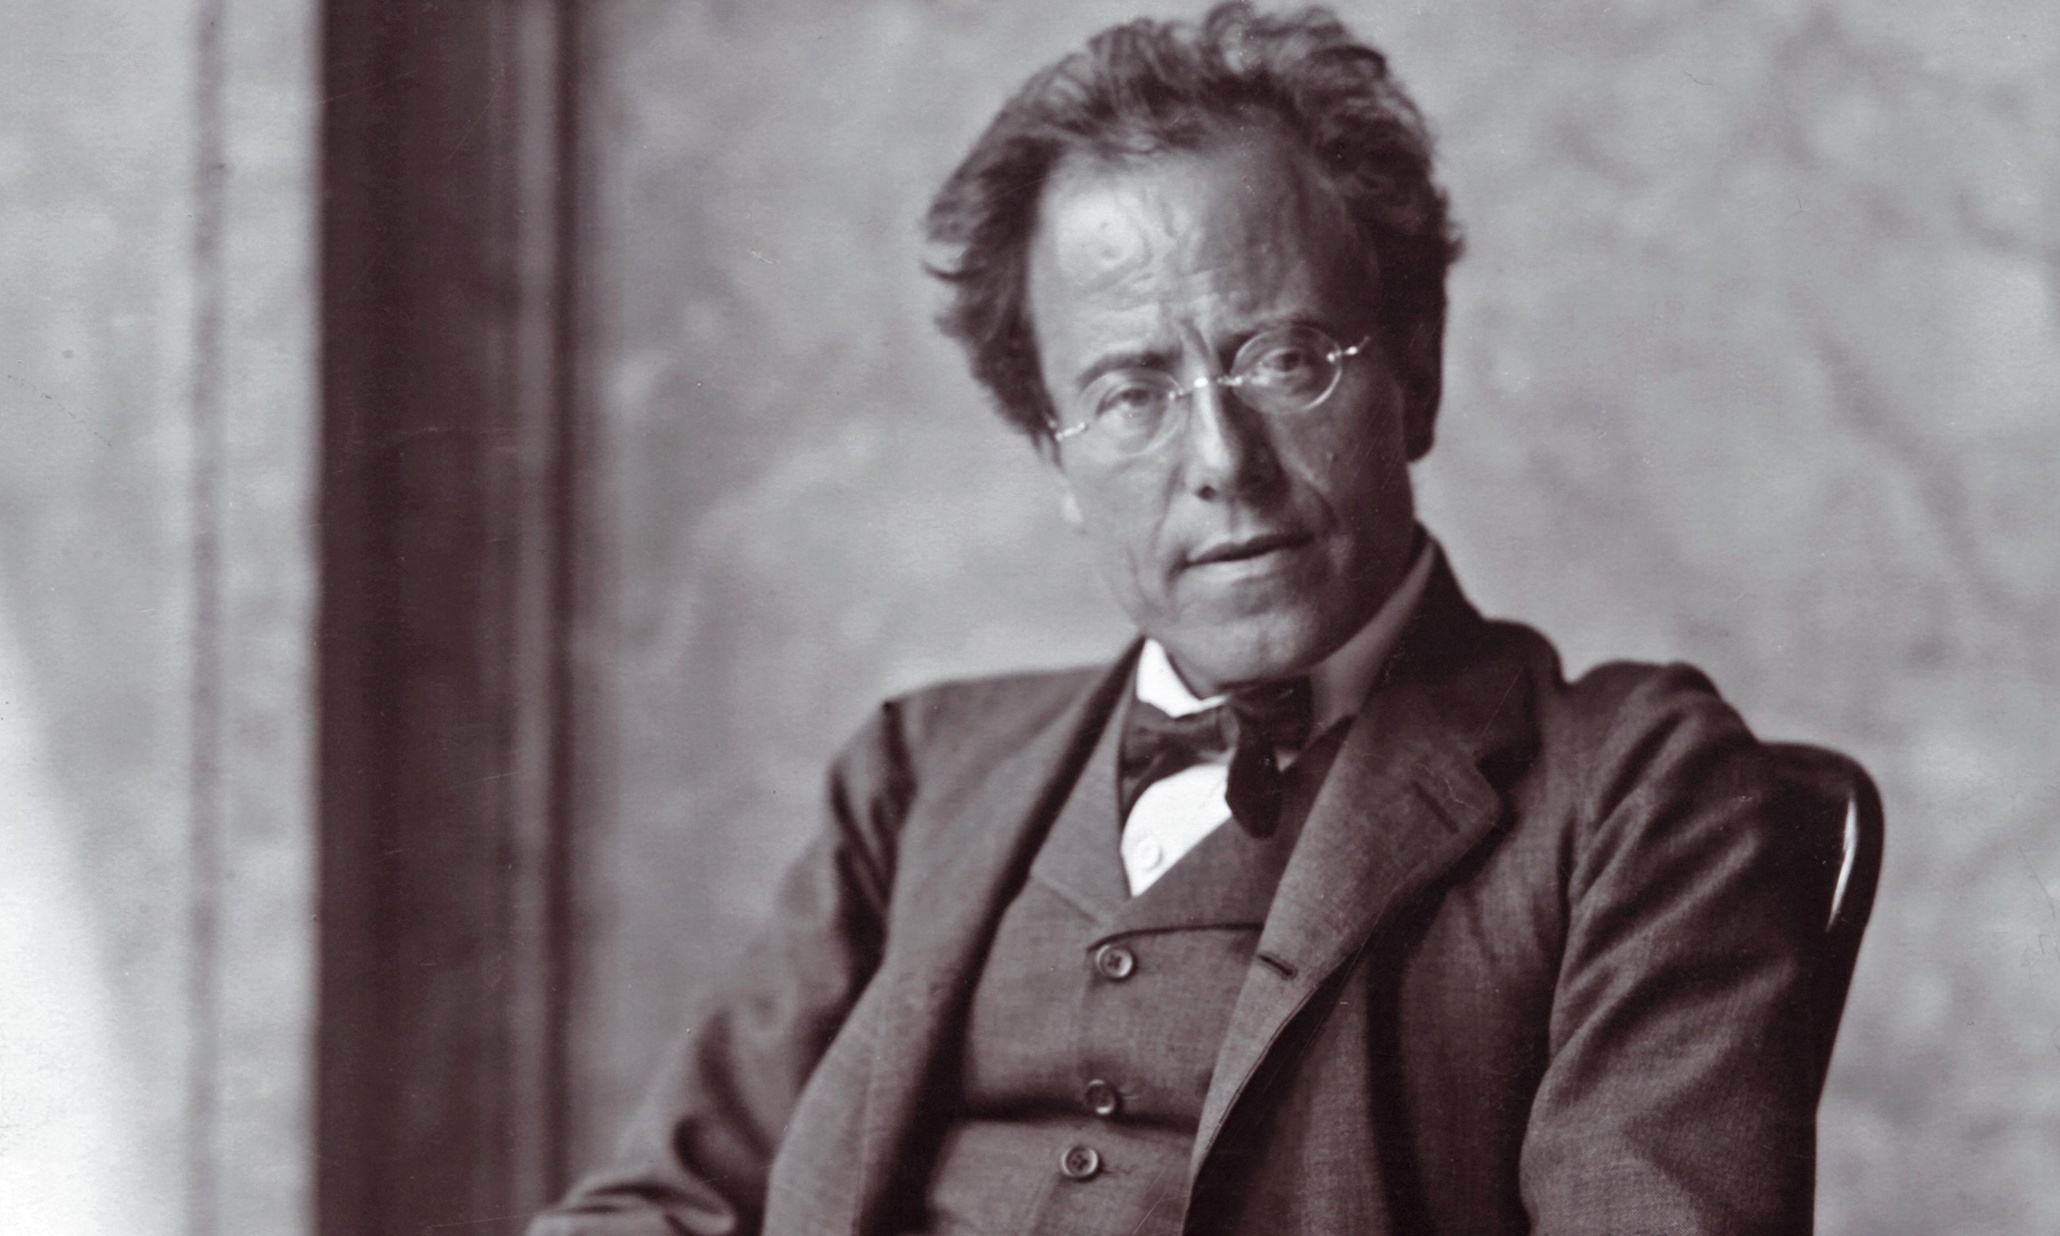 Gustav Mahler - Symphony No.1 In D Major